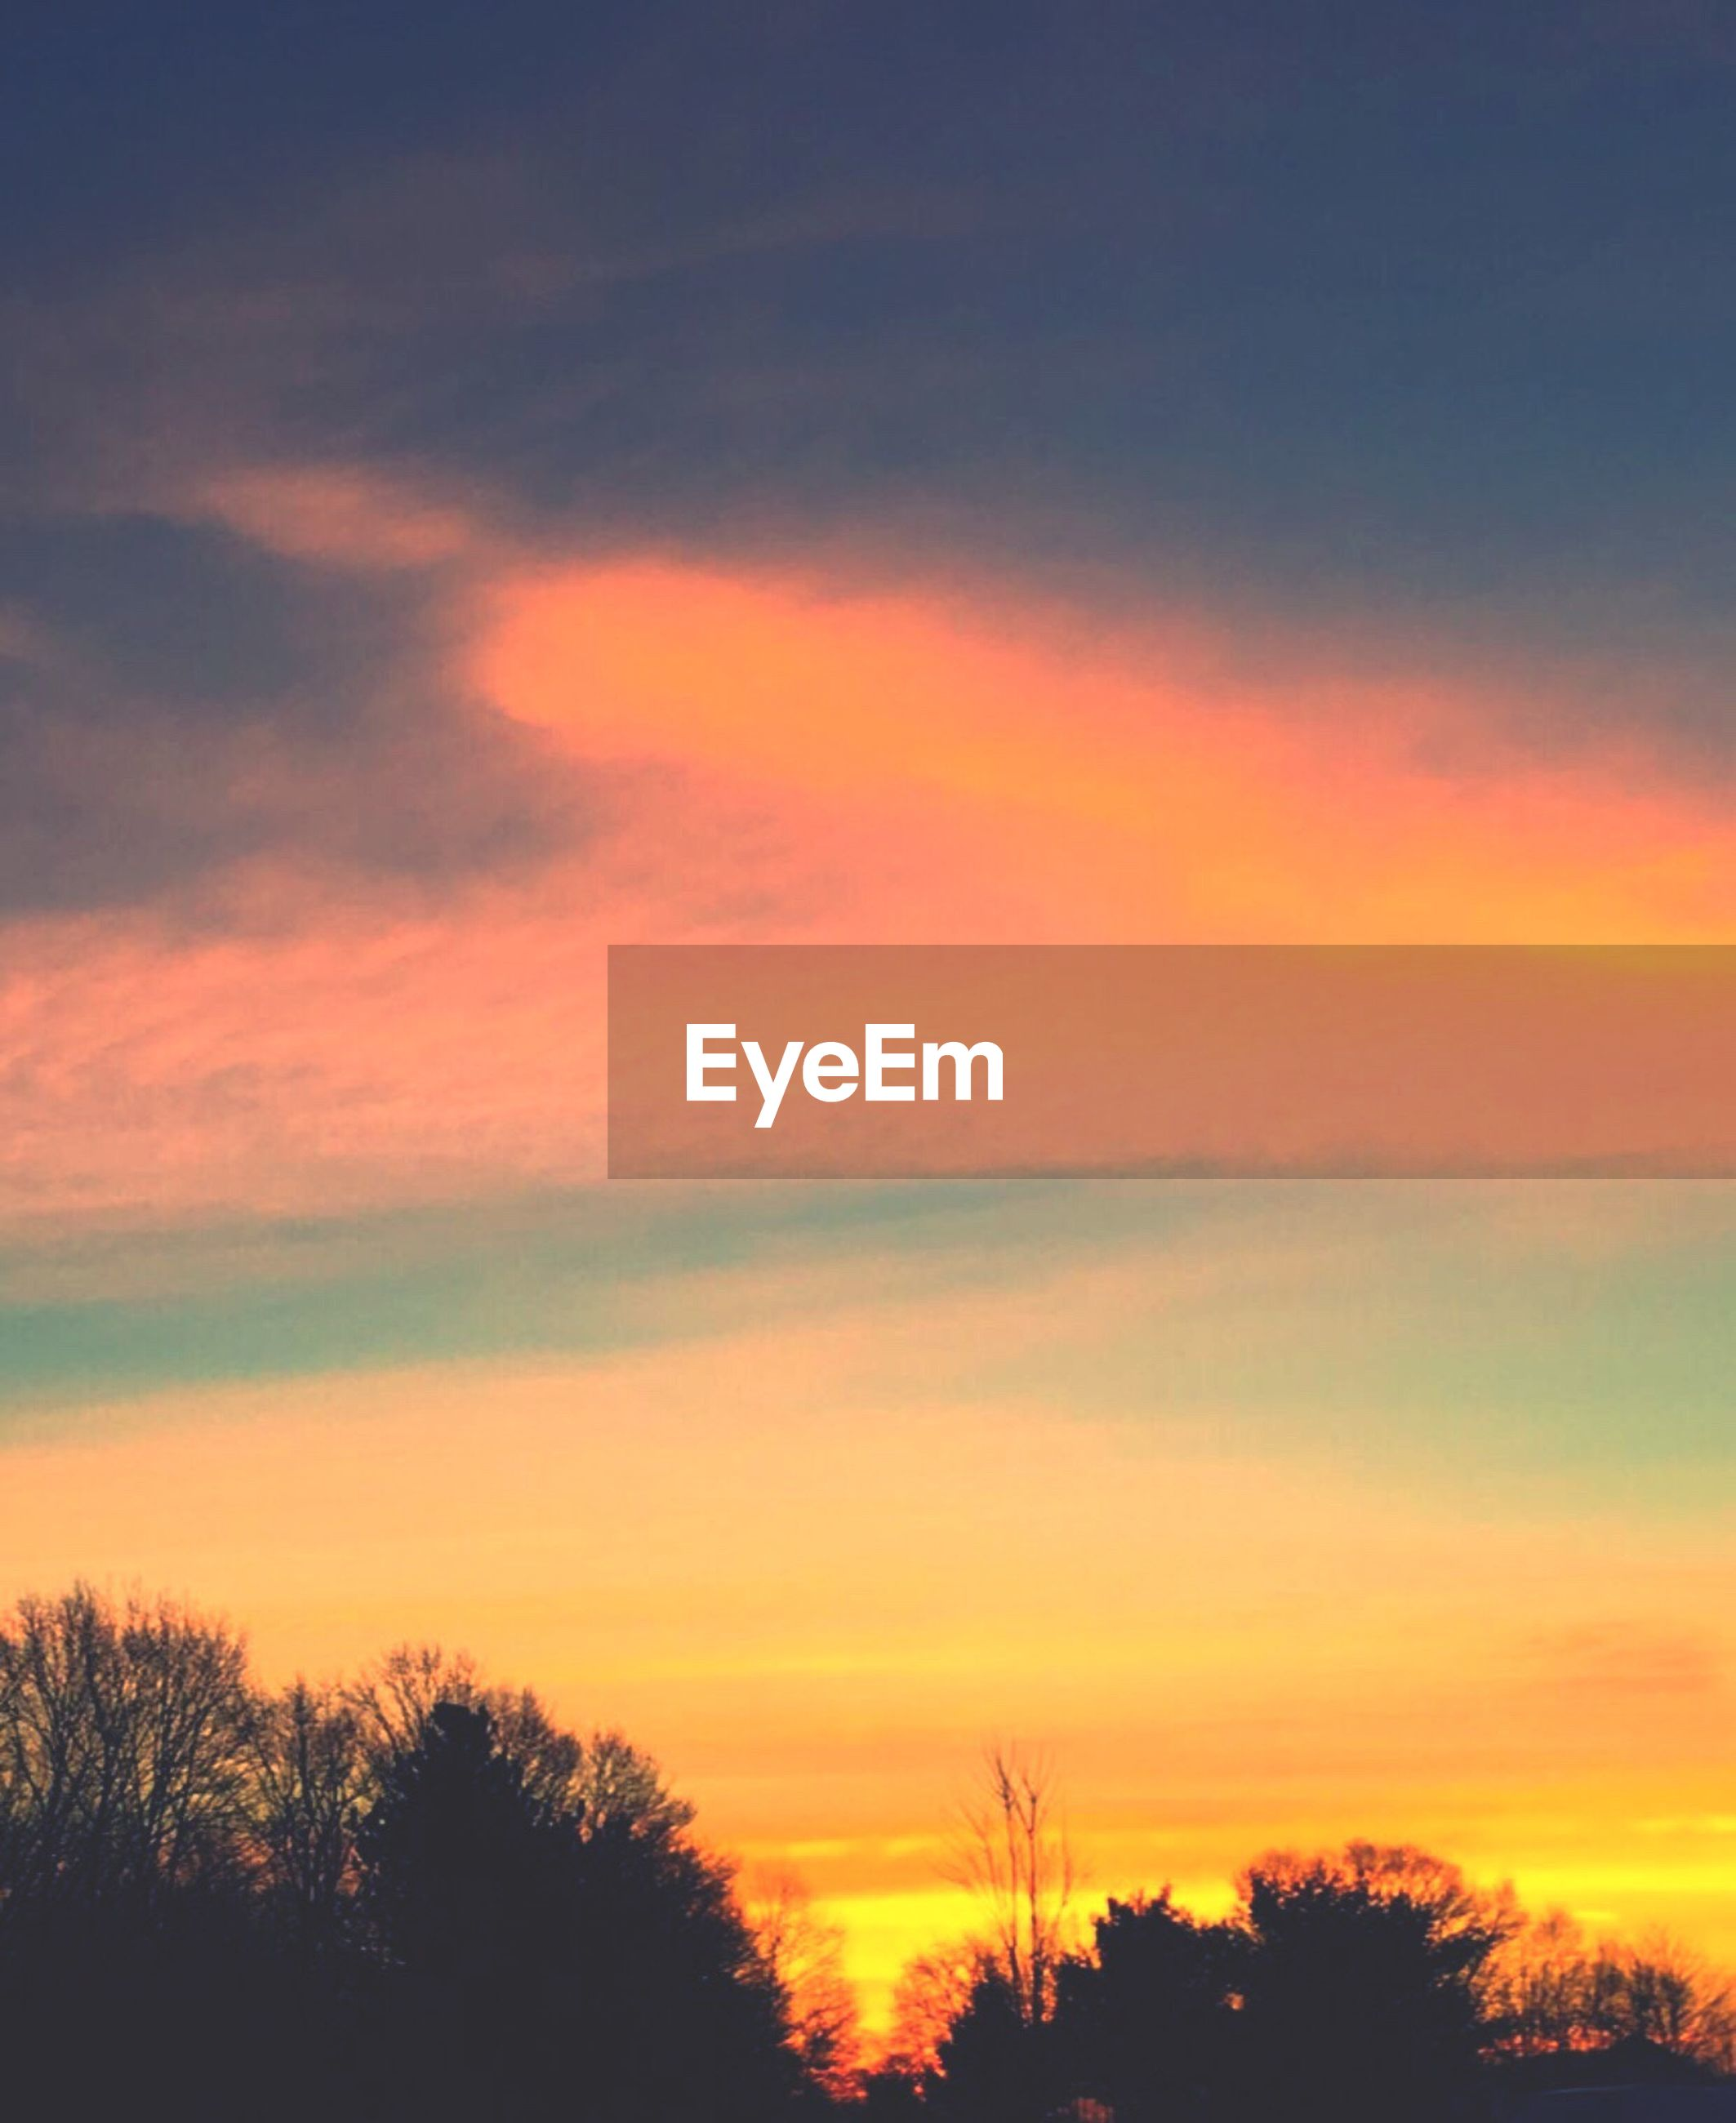 sunset, nature, beauty in nature, sky, silhouette, scenics, orange color, tranquility, tranquil scene, idyllic, tree, dramatic sky, cloud - sky, outdoors, no people